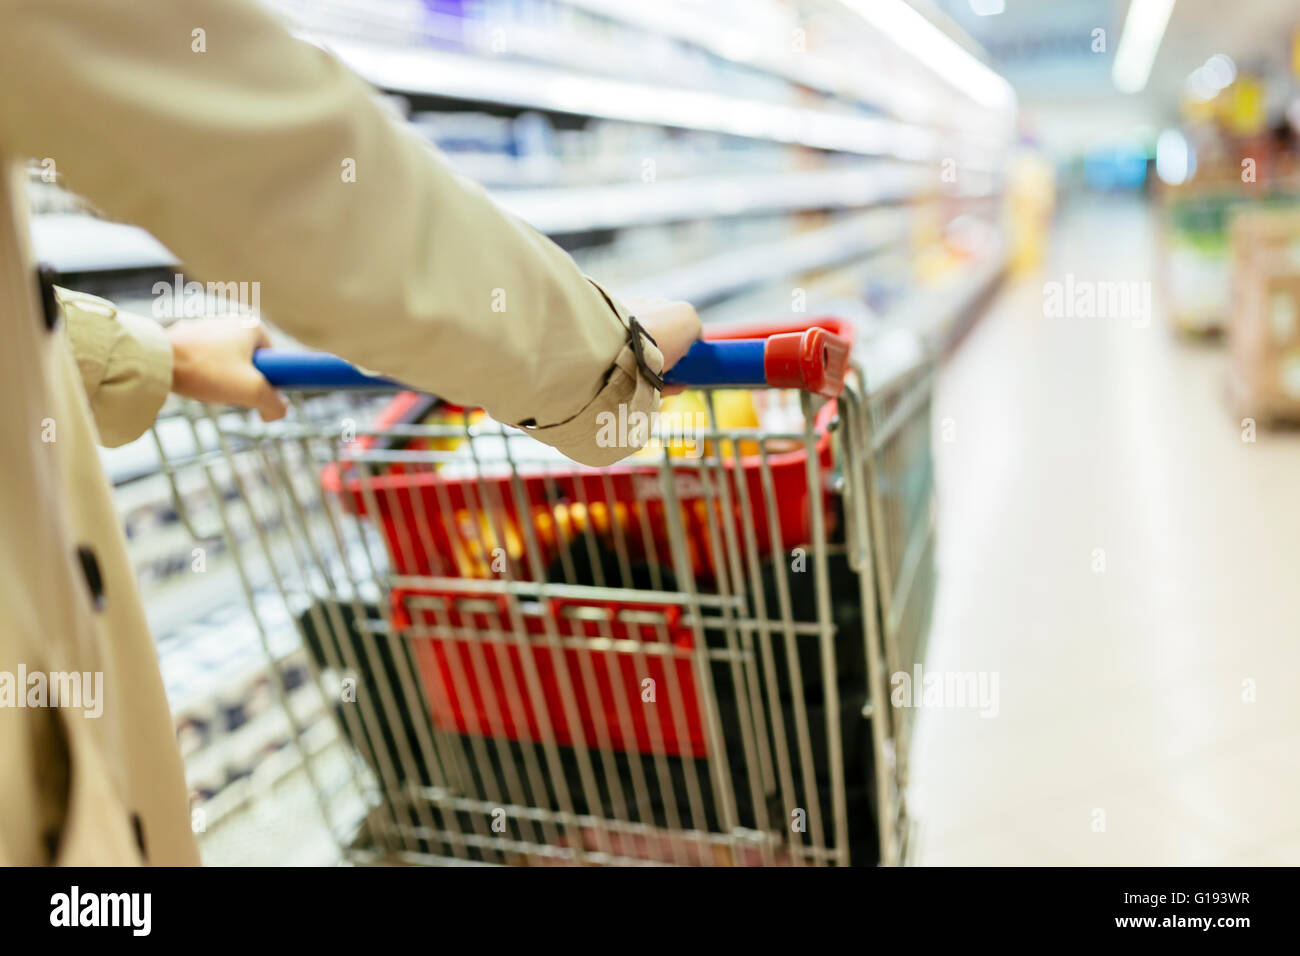 Woman shopping in supermarket trolley Photo Stock